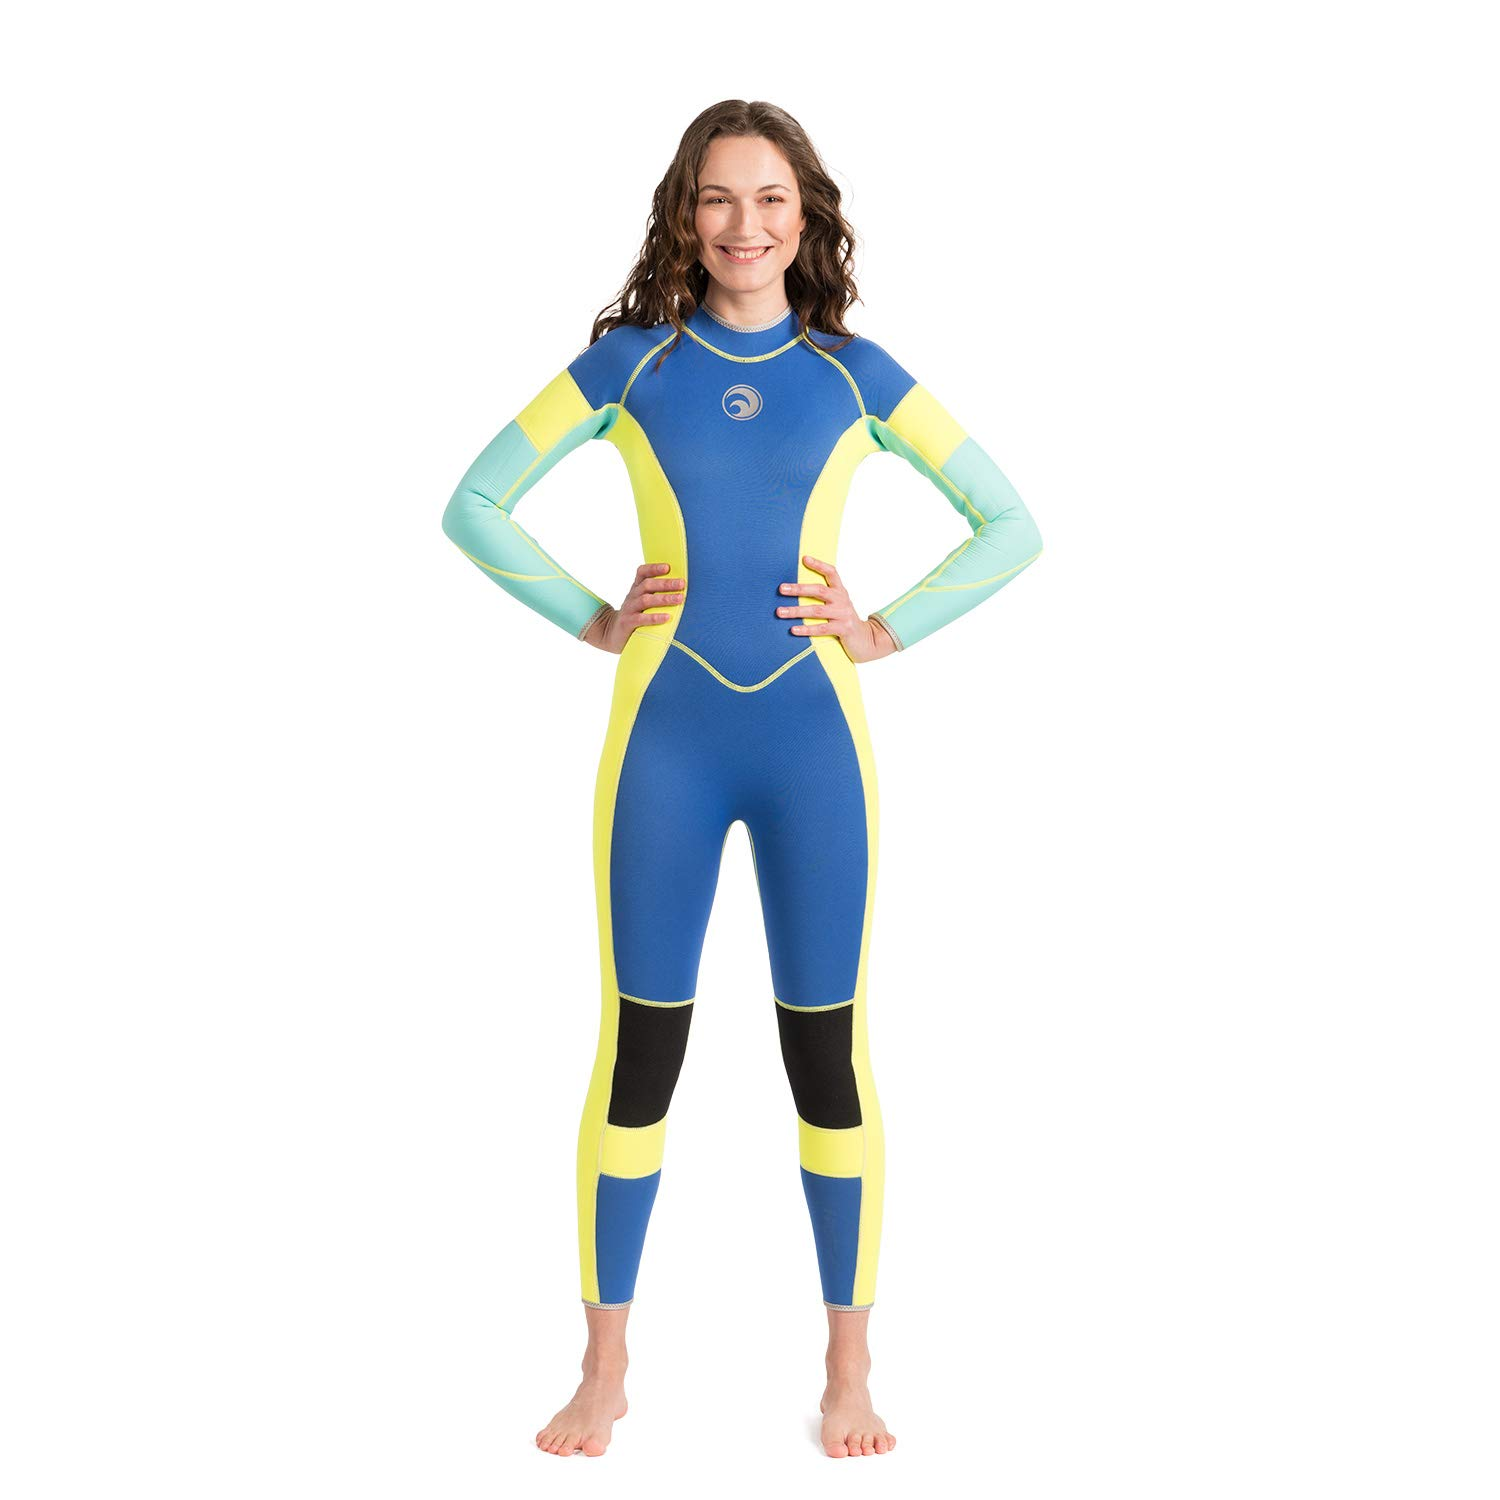 Scubadonkey RAD 3mm Neoprene Wetsuit for Women 2XL by Scubadonkey